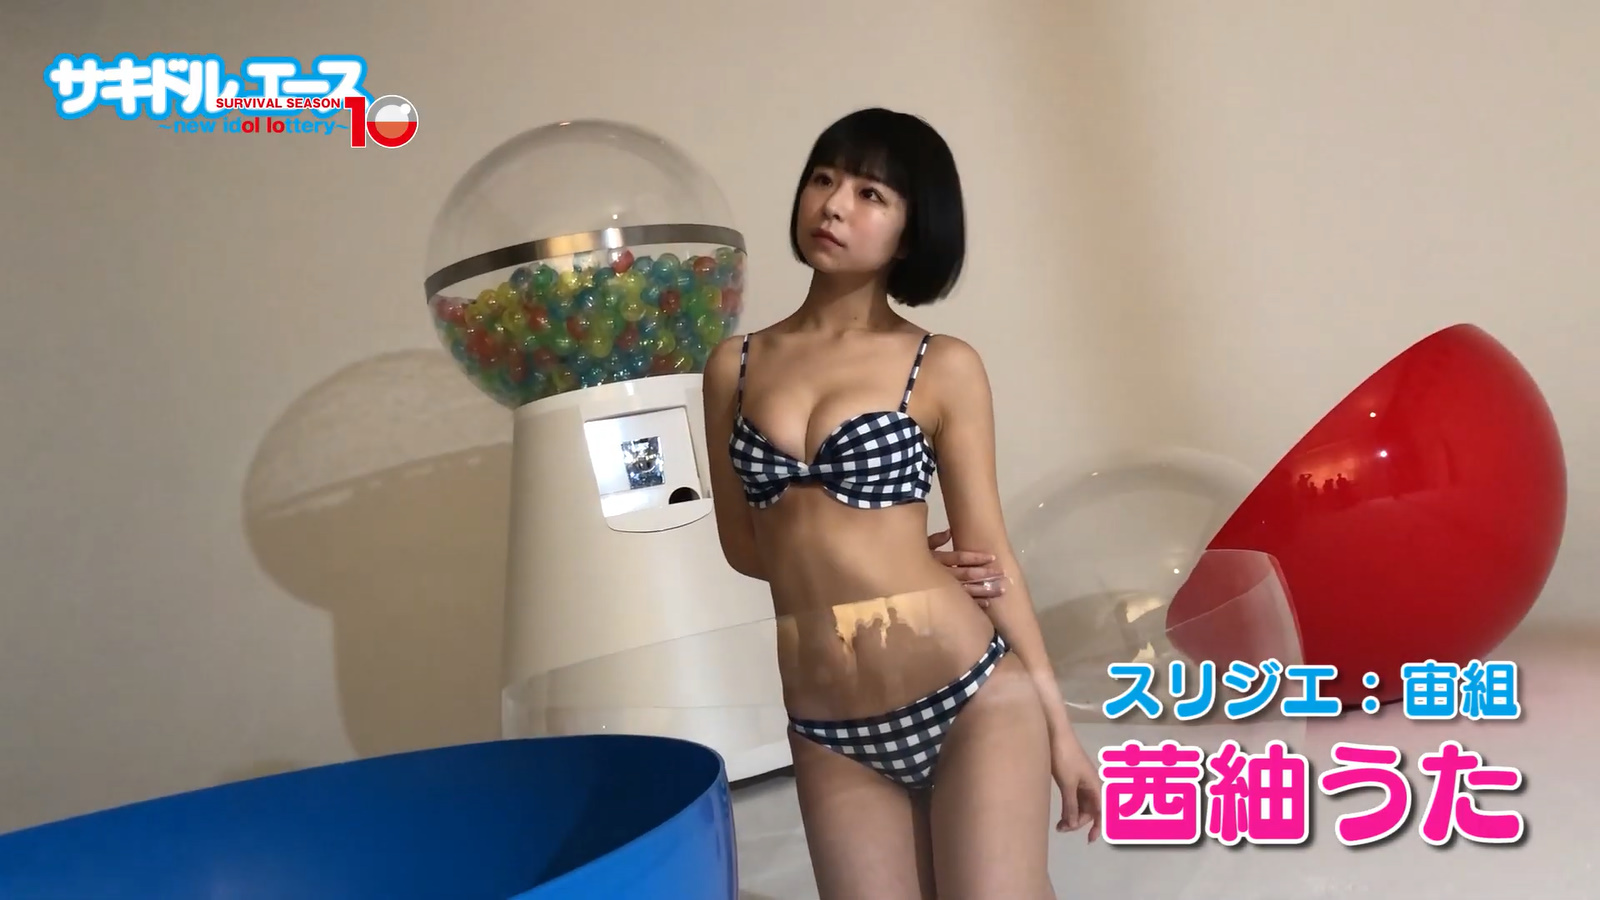 Sakidol Ace 10 Introduction Movie Capture of Swimsuit055